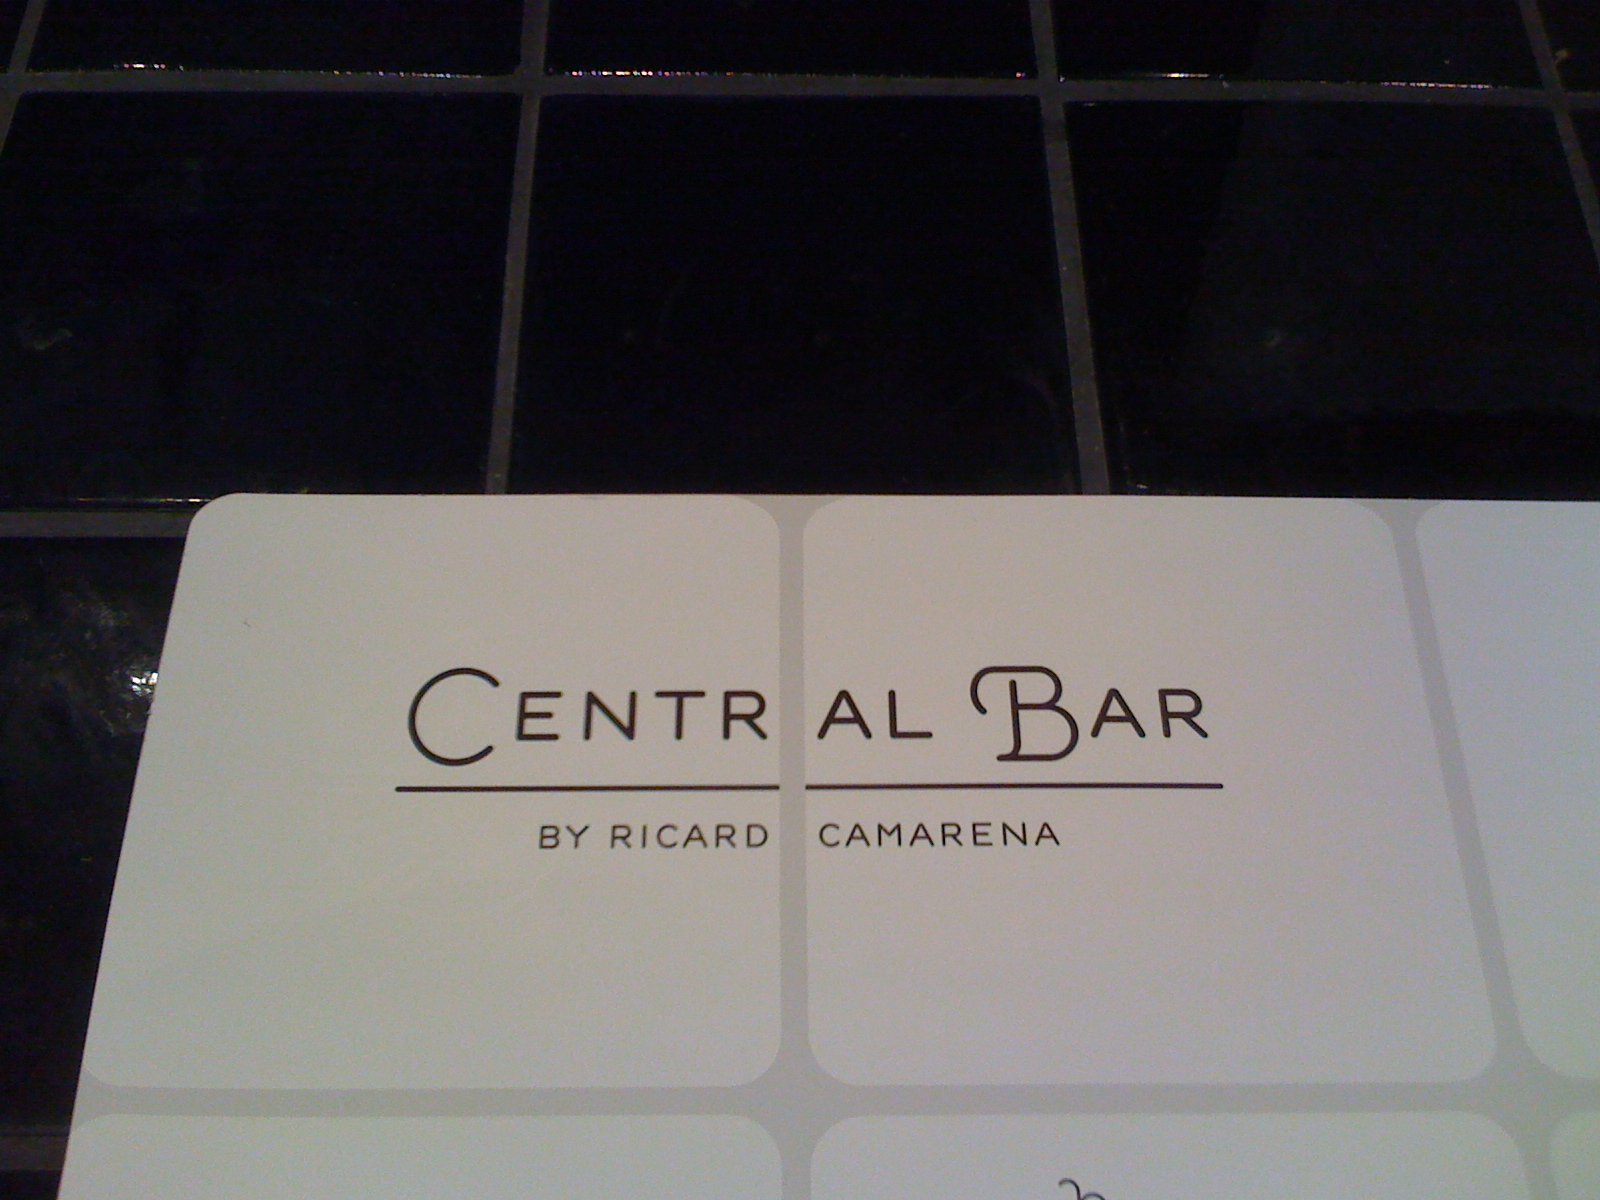 Restaurante Central Bar by Ricard Camarena Detalle carta